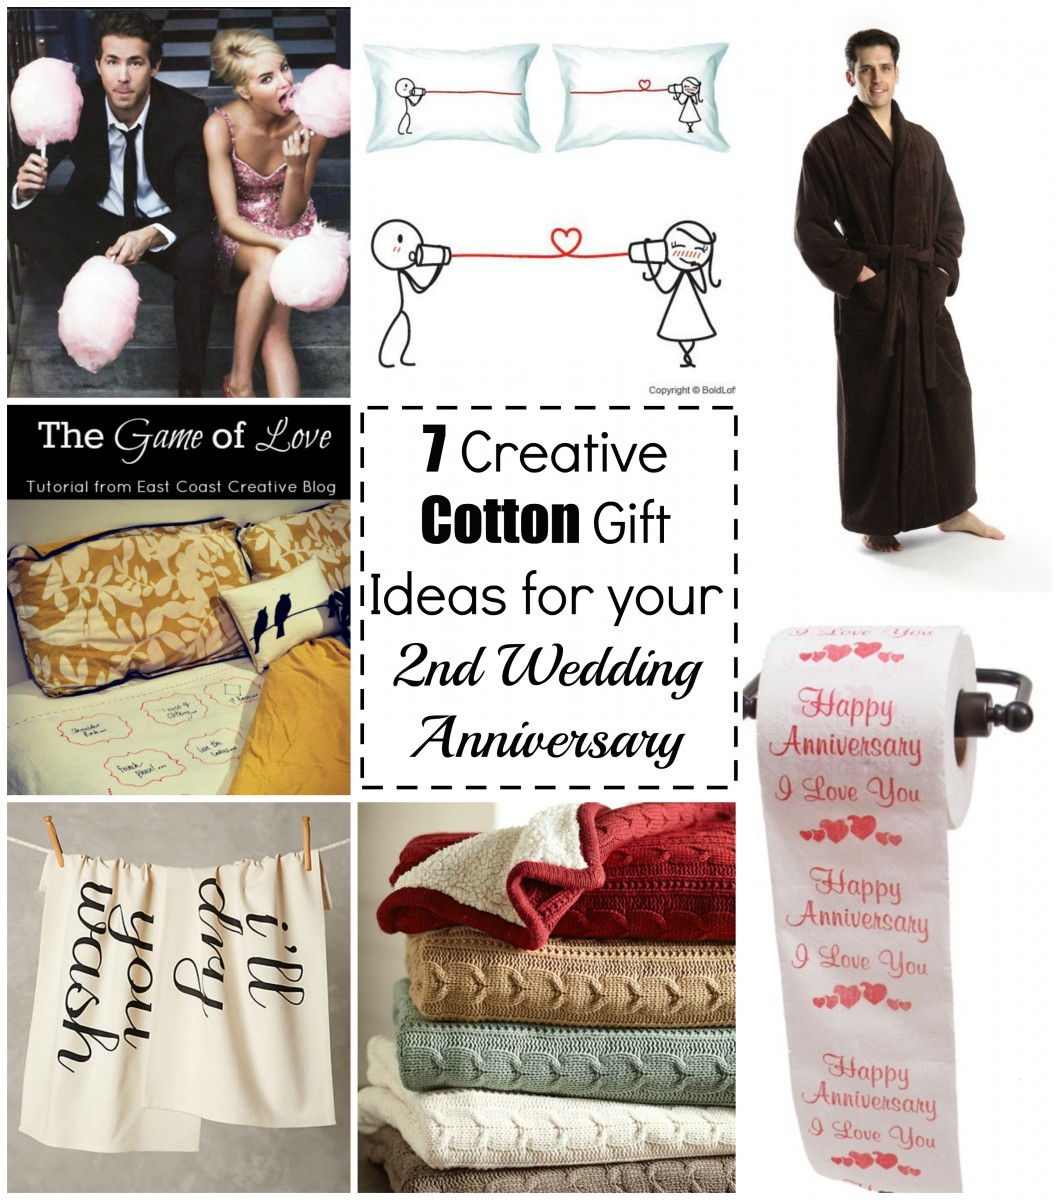 Great Wedding Gifts Second Marriages : outstanding second marriage wedding gift ideas 9 exactly inspiration ...